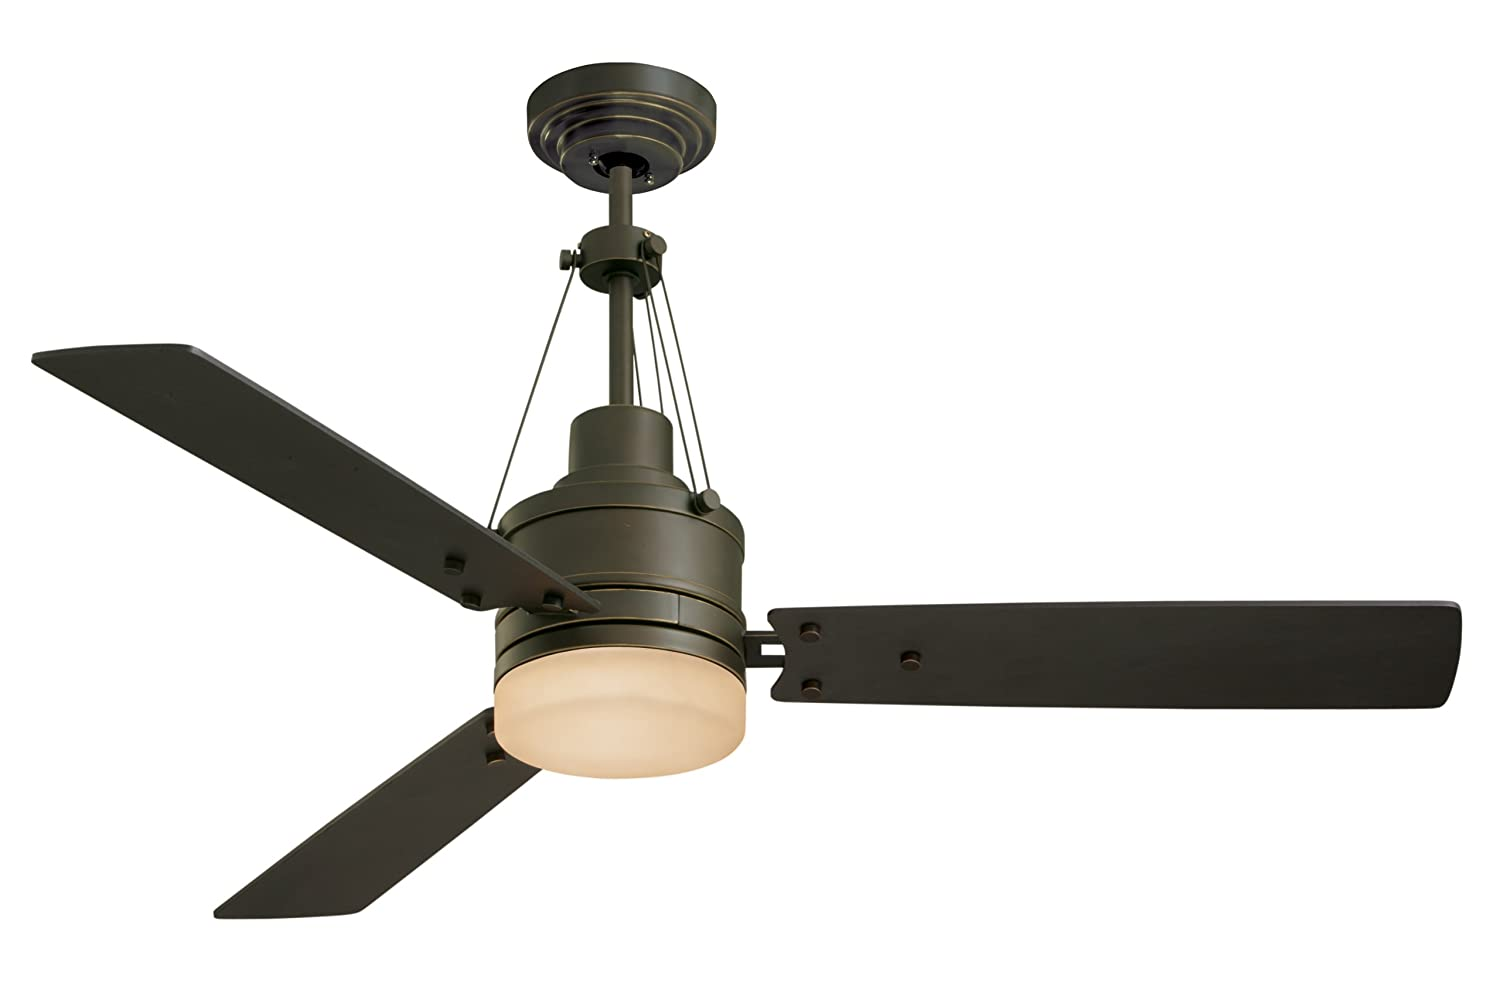 Emerson cf205ges ceiling fan with light and remote 54 inch blades emerson cf205ges ceiling fan with light and remote 54 inch blades golden espresso close to ceiling light fixtures amazon aloadofball